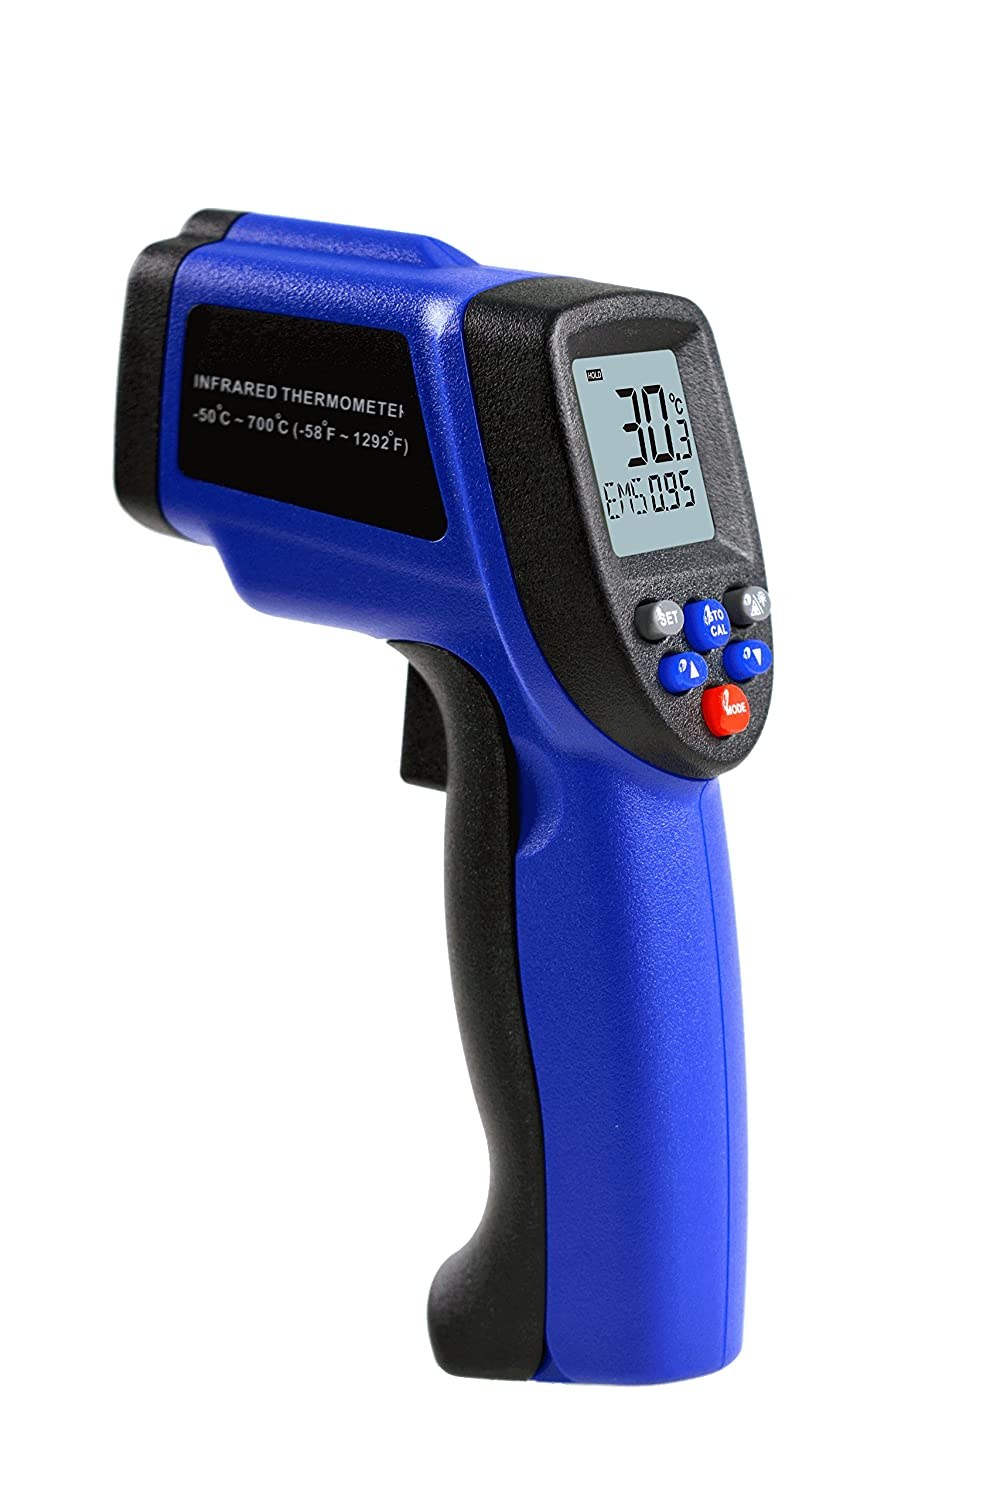 Amazon.com: Benetech WT700 Infrared Thermometer, -50 to 700℃; D:S=12:1: Industrial & Scientific